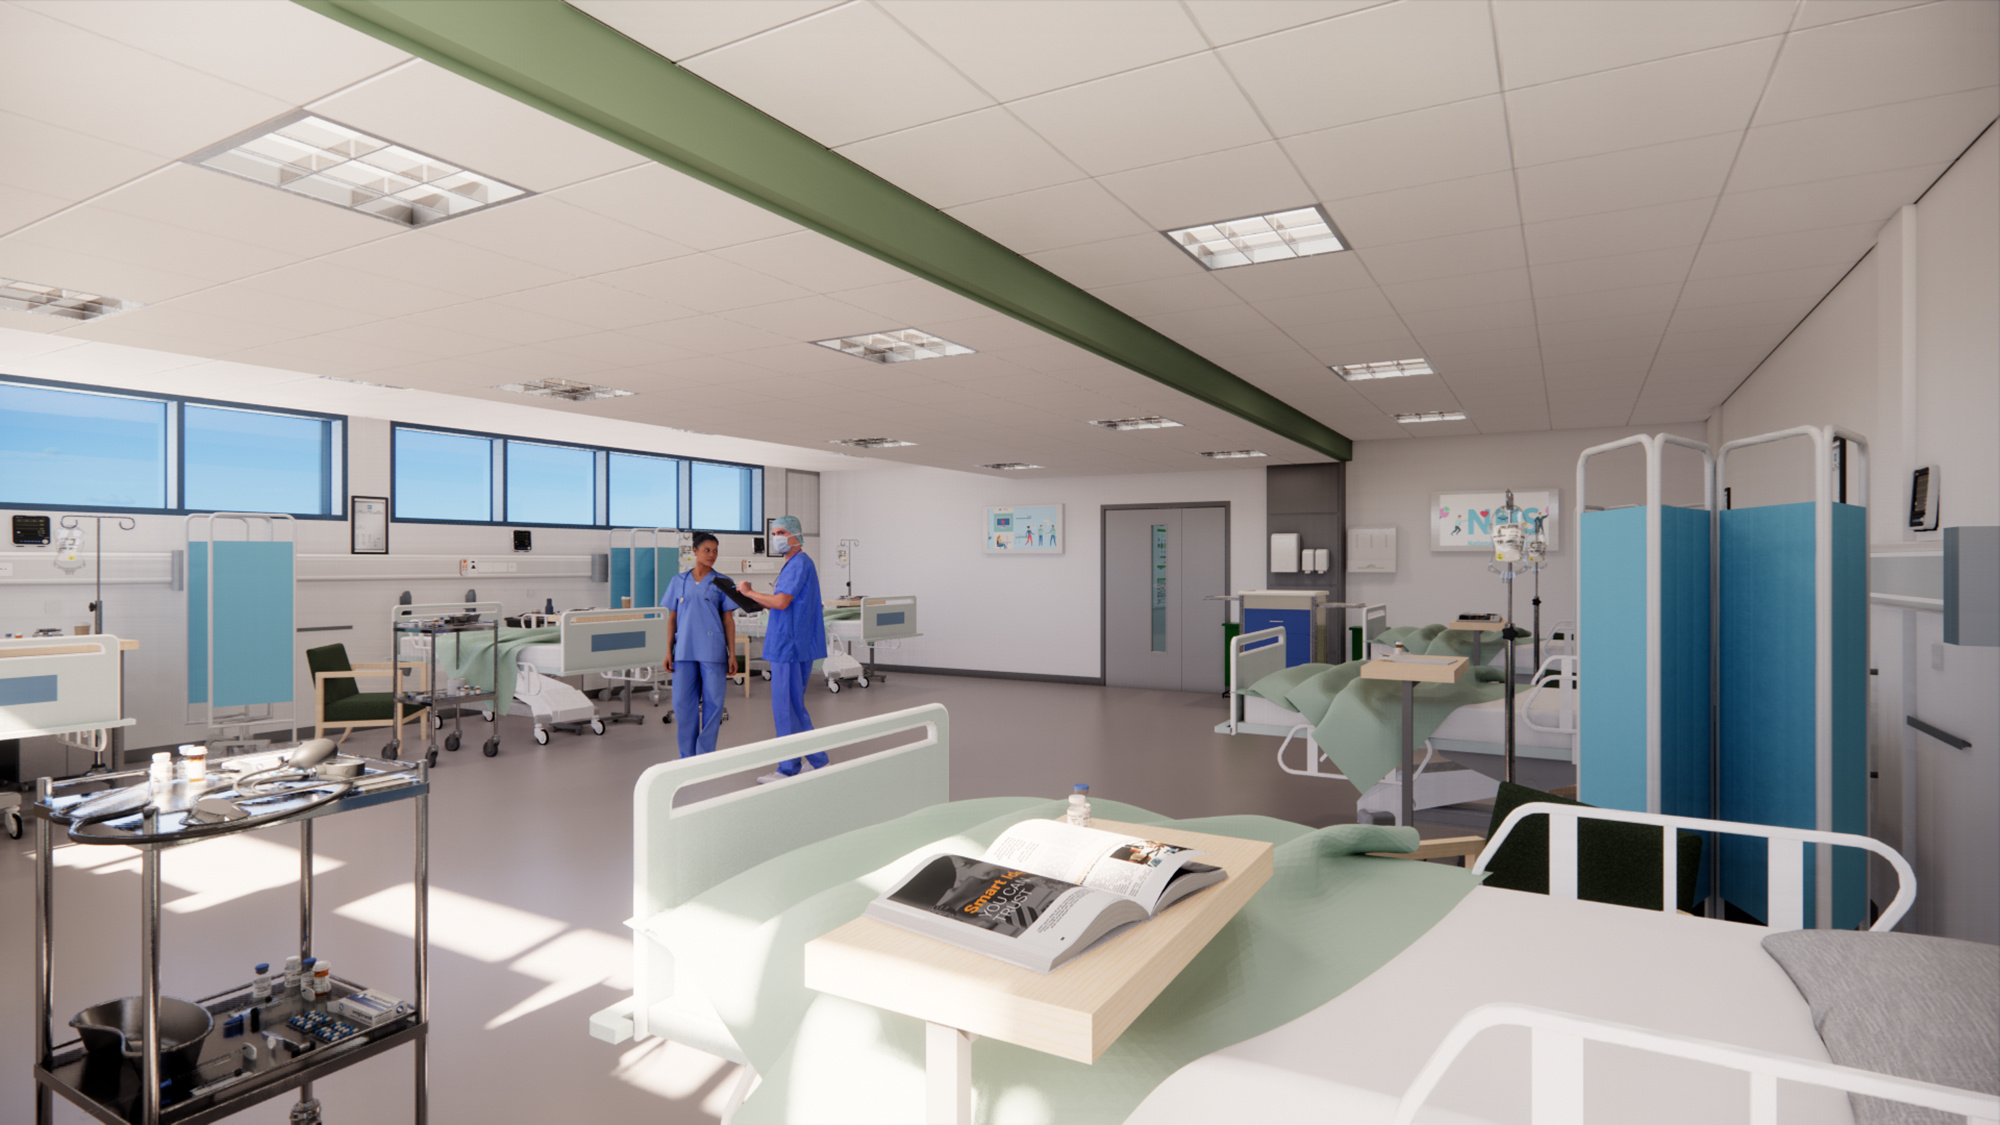 3_the_school_of_nursing_and_allied_health_is_situated_adjacent_to_st_richards_hospital_2000